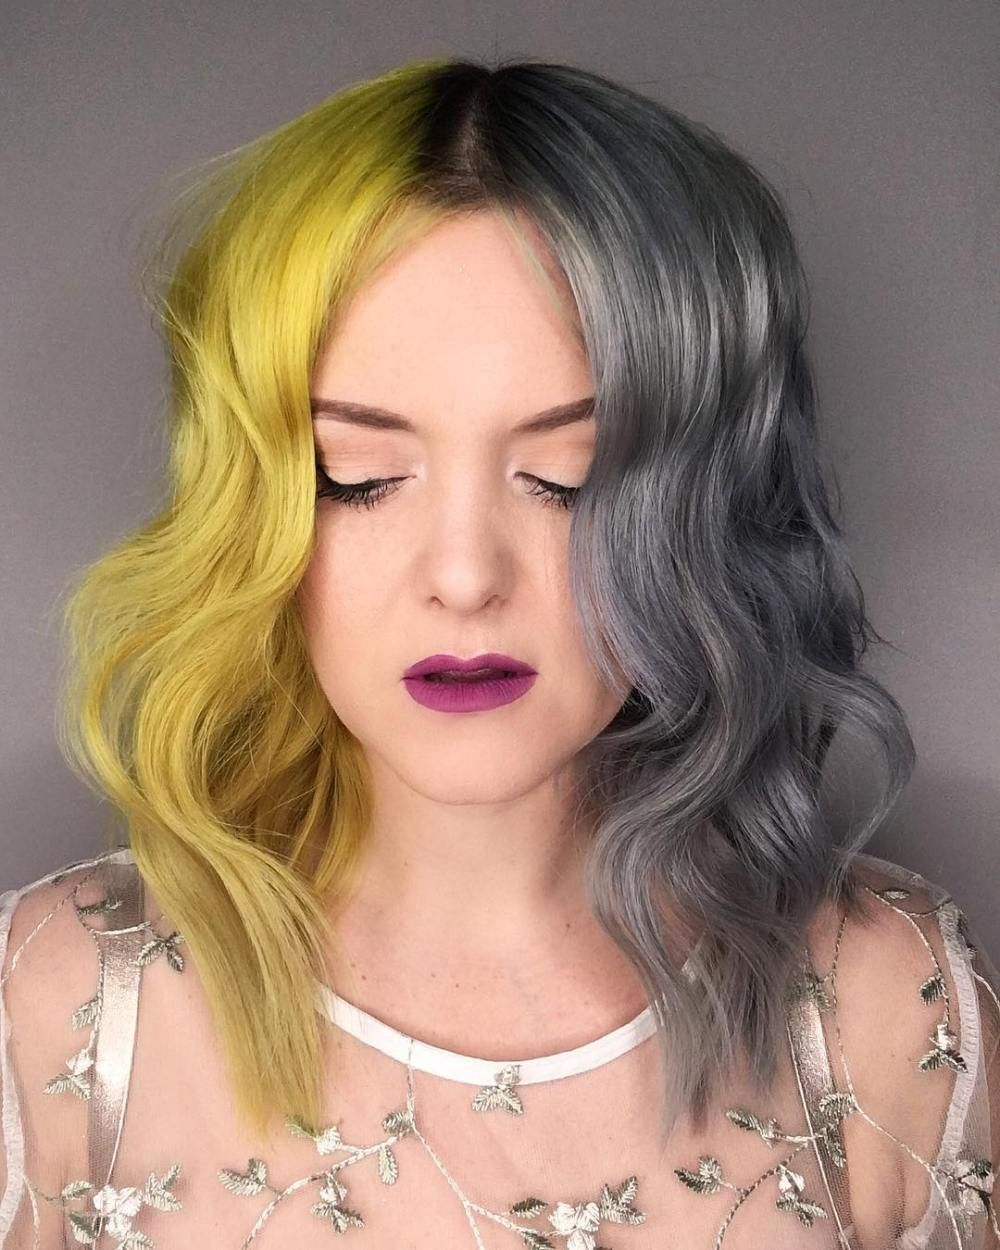 Photo of 7 Badass Split Hair Color Ideas and Tips Based on My Experience